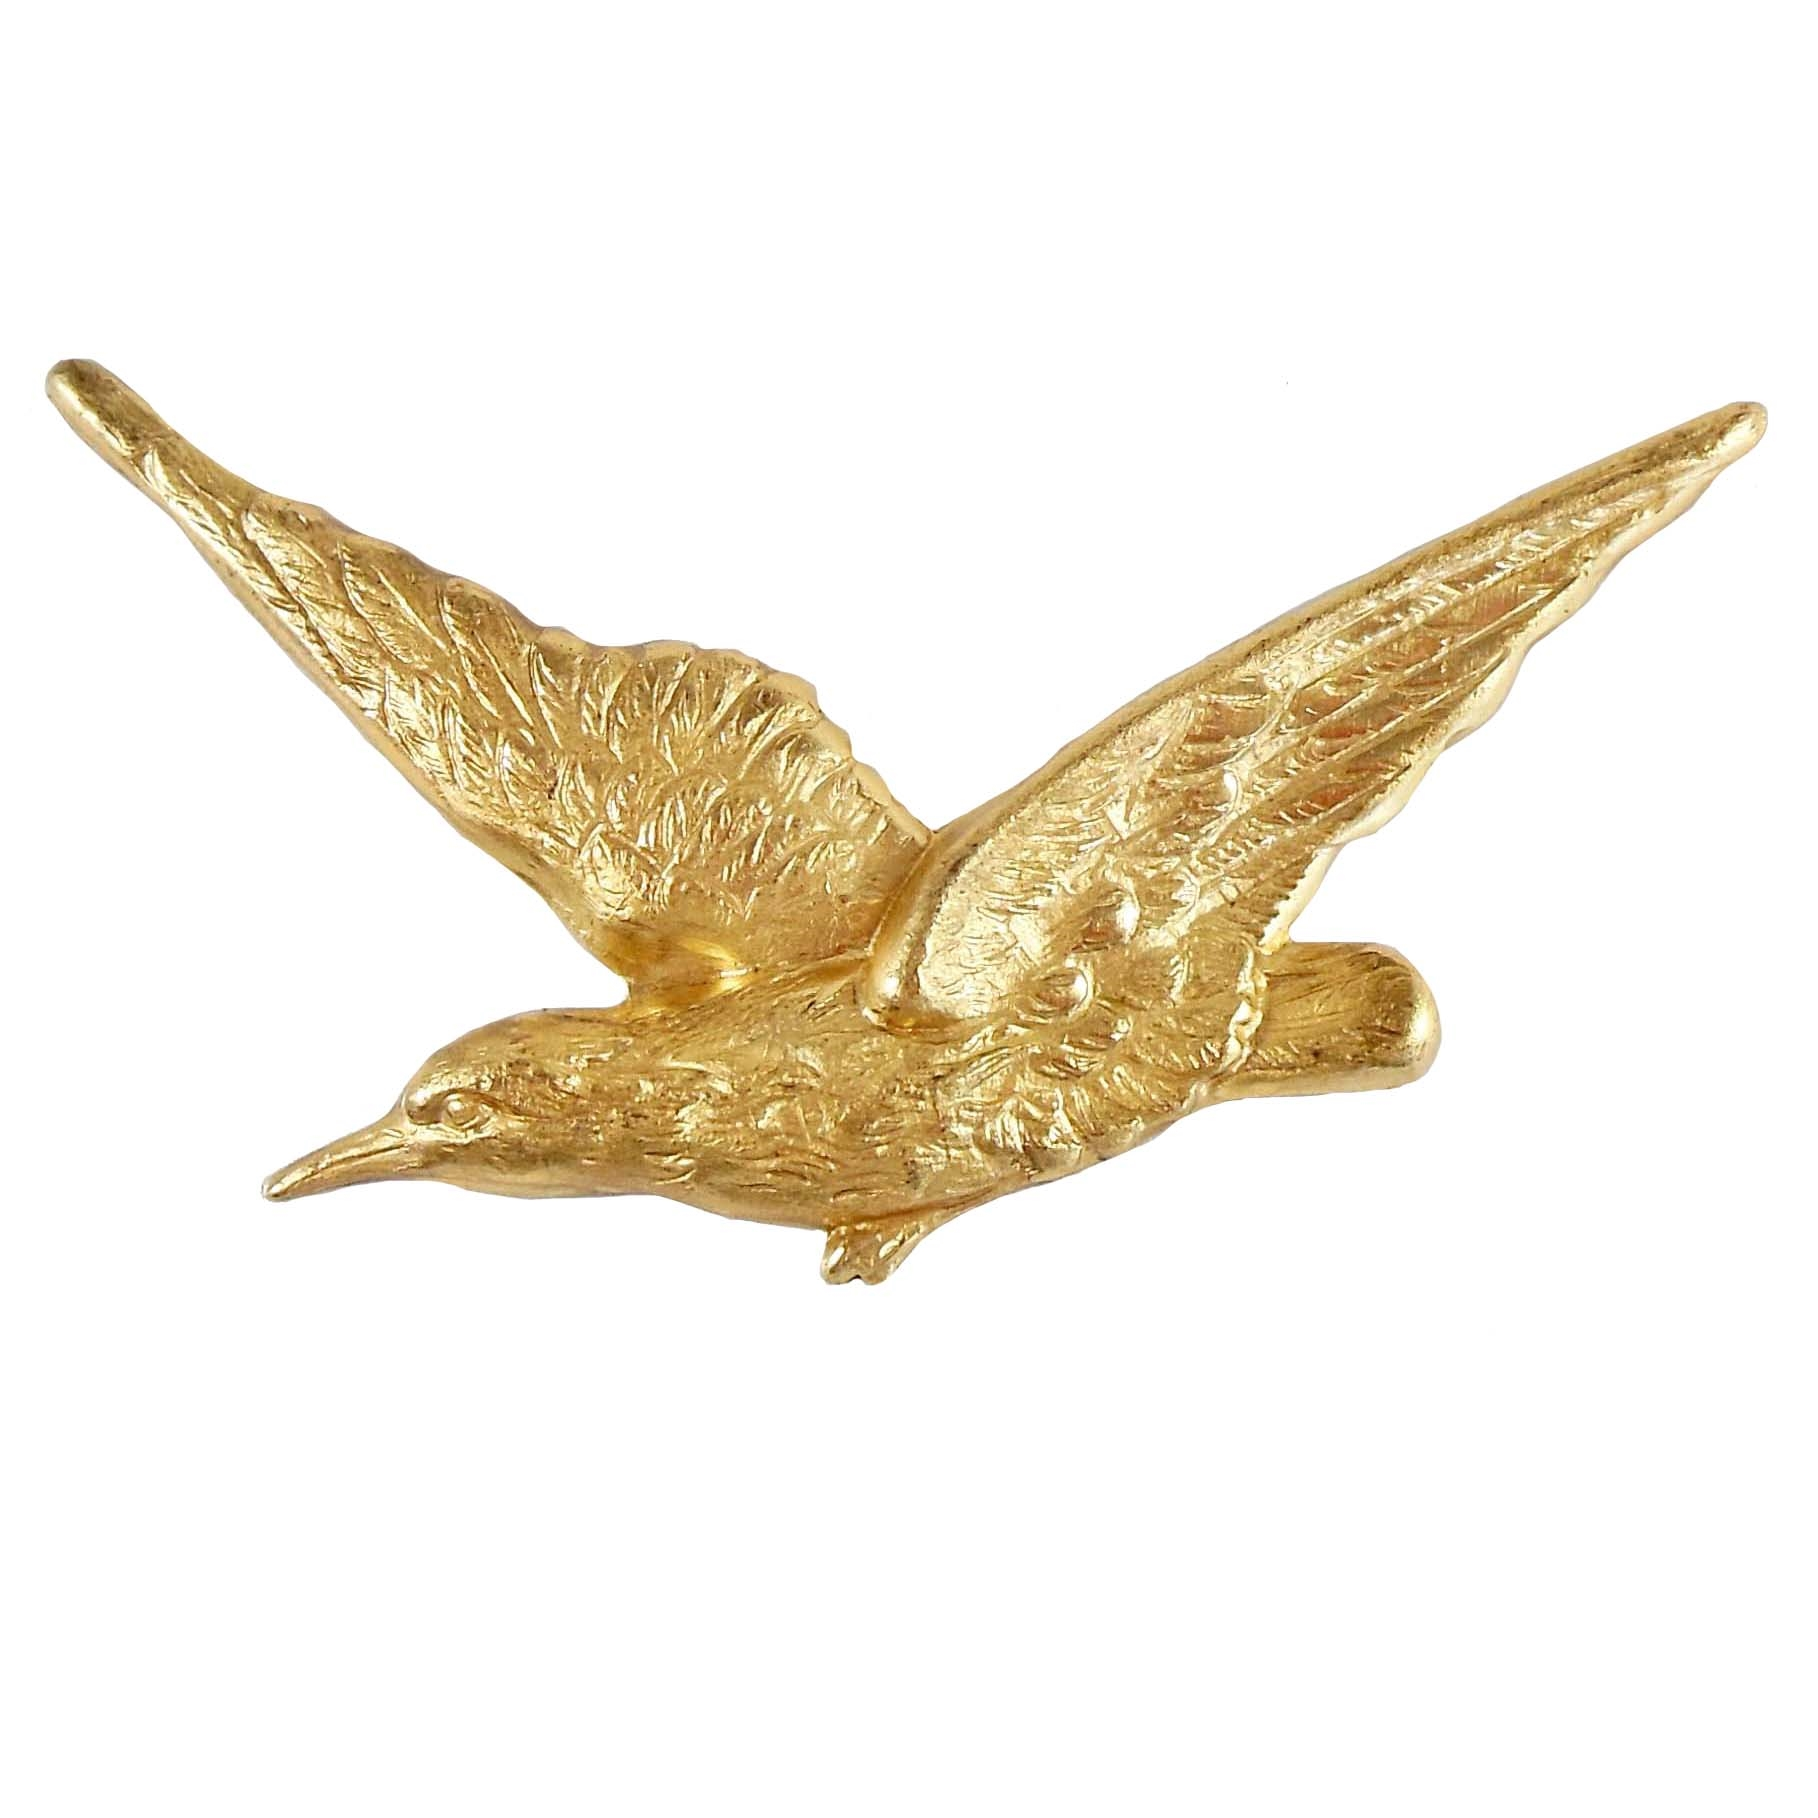 brass bird, bird stampings, raw brass, 06866, B'sue Boutiques, nickel free, US Made, jewelry making, jewelry supplies, bird jewelry, antique brass, vintage jewelry parts, brass jewelry parts, flying birds, large winged bird